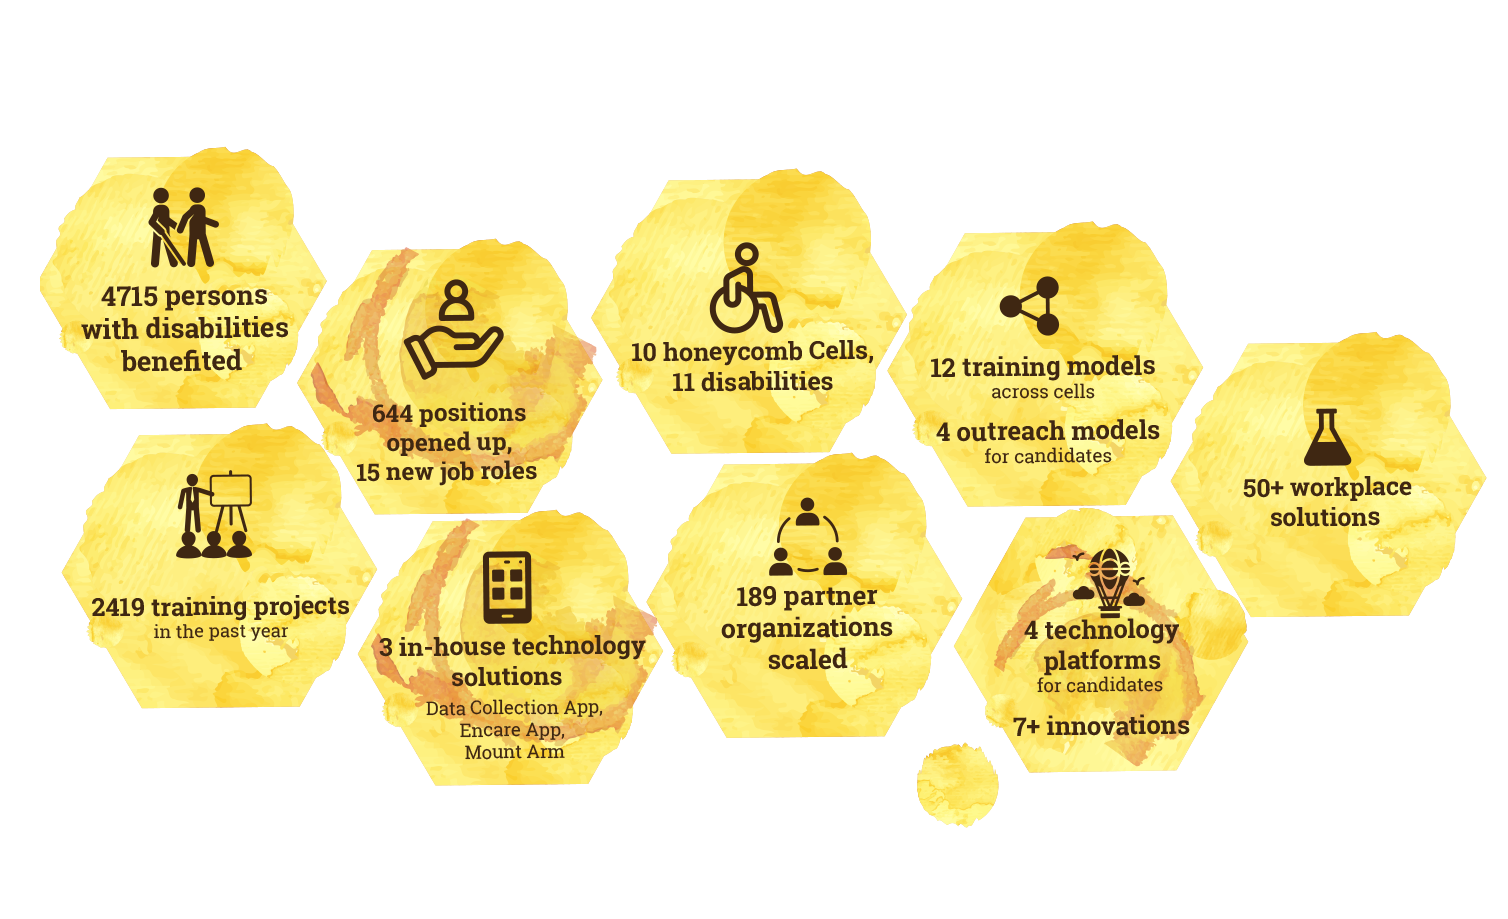 4715 persons with disabilities benefited; 644 positions opened up, 15 new job roles; 2419 training projects in the past year; 3 in-house technology solutions - Data Collection App, Encare App,  Mount Arm; 10 honeycomb Cells, 11 disabilities; 189 partner organizations scaled; 12 training models across cells; 4 outreach models for candidates; 4 technology platforms for candidates; 7+ innovations; 50+ workplace solutions